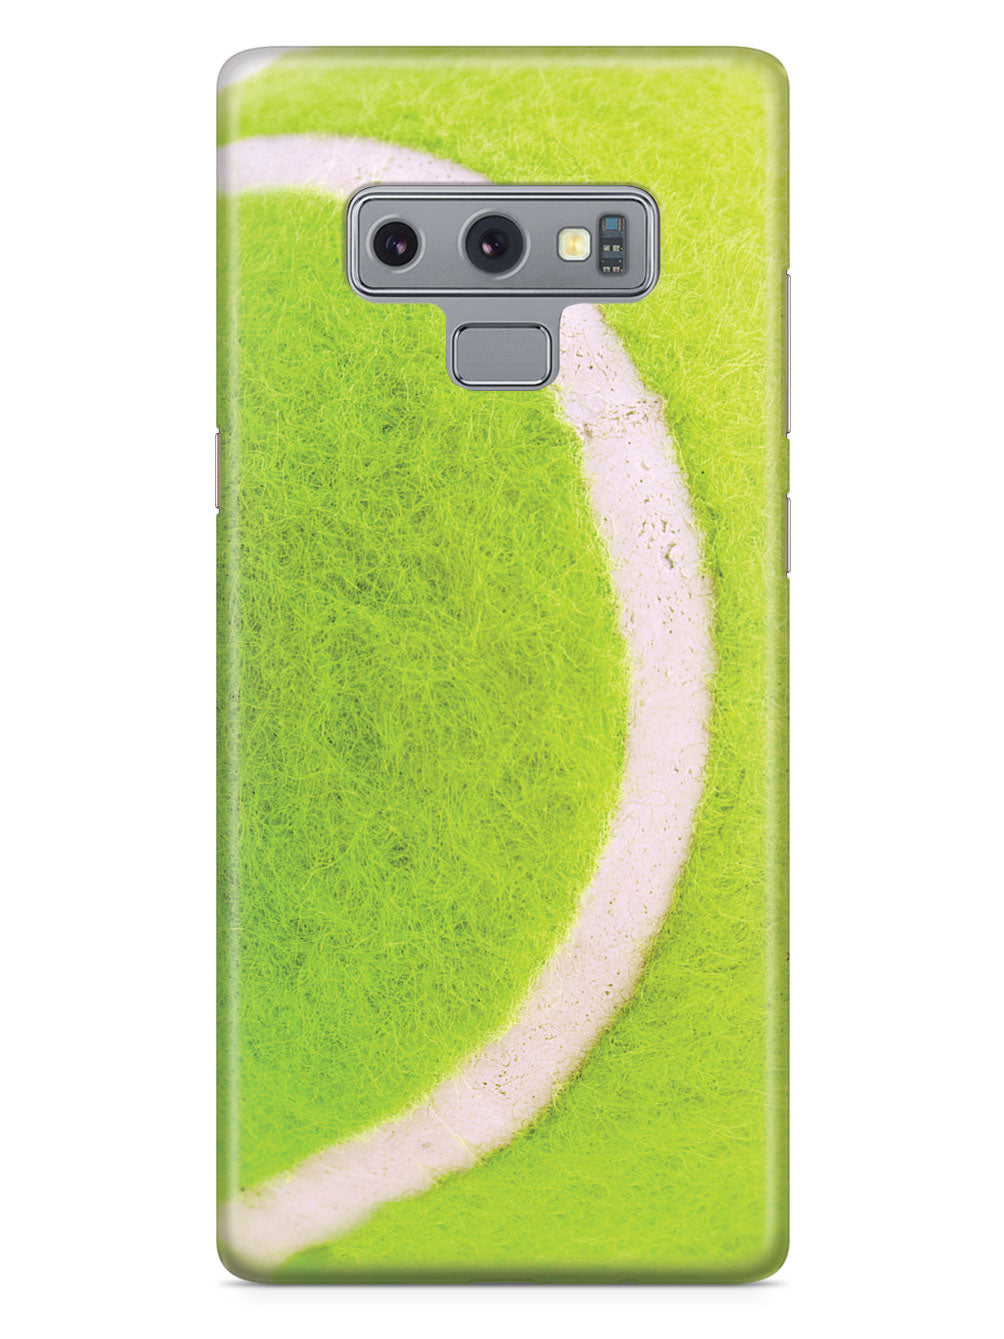 Tennis Ball Textured Case